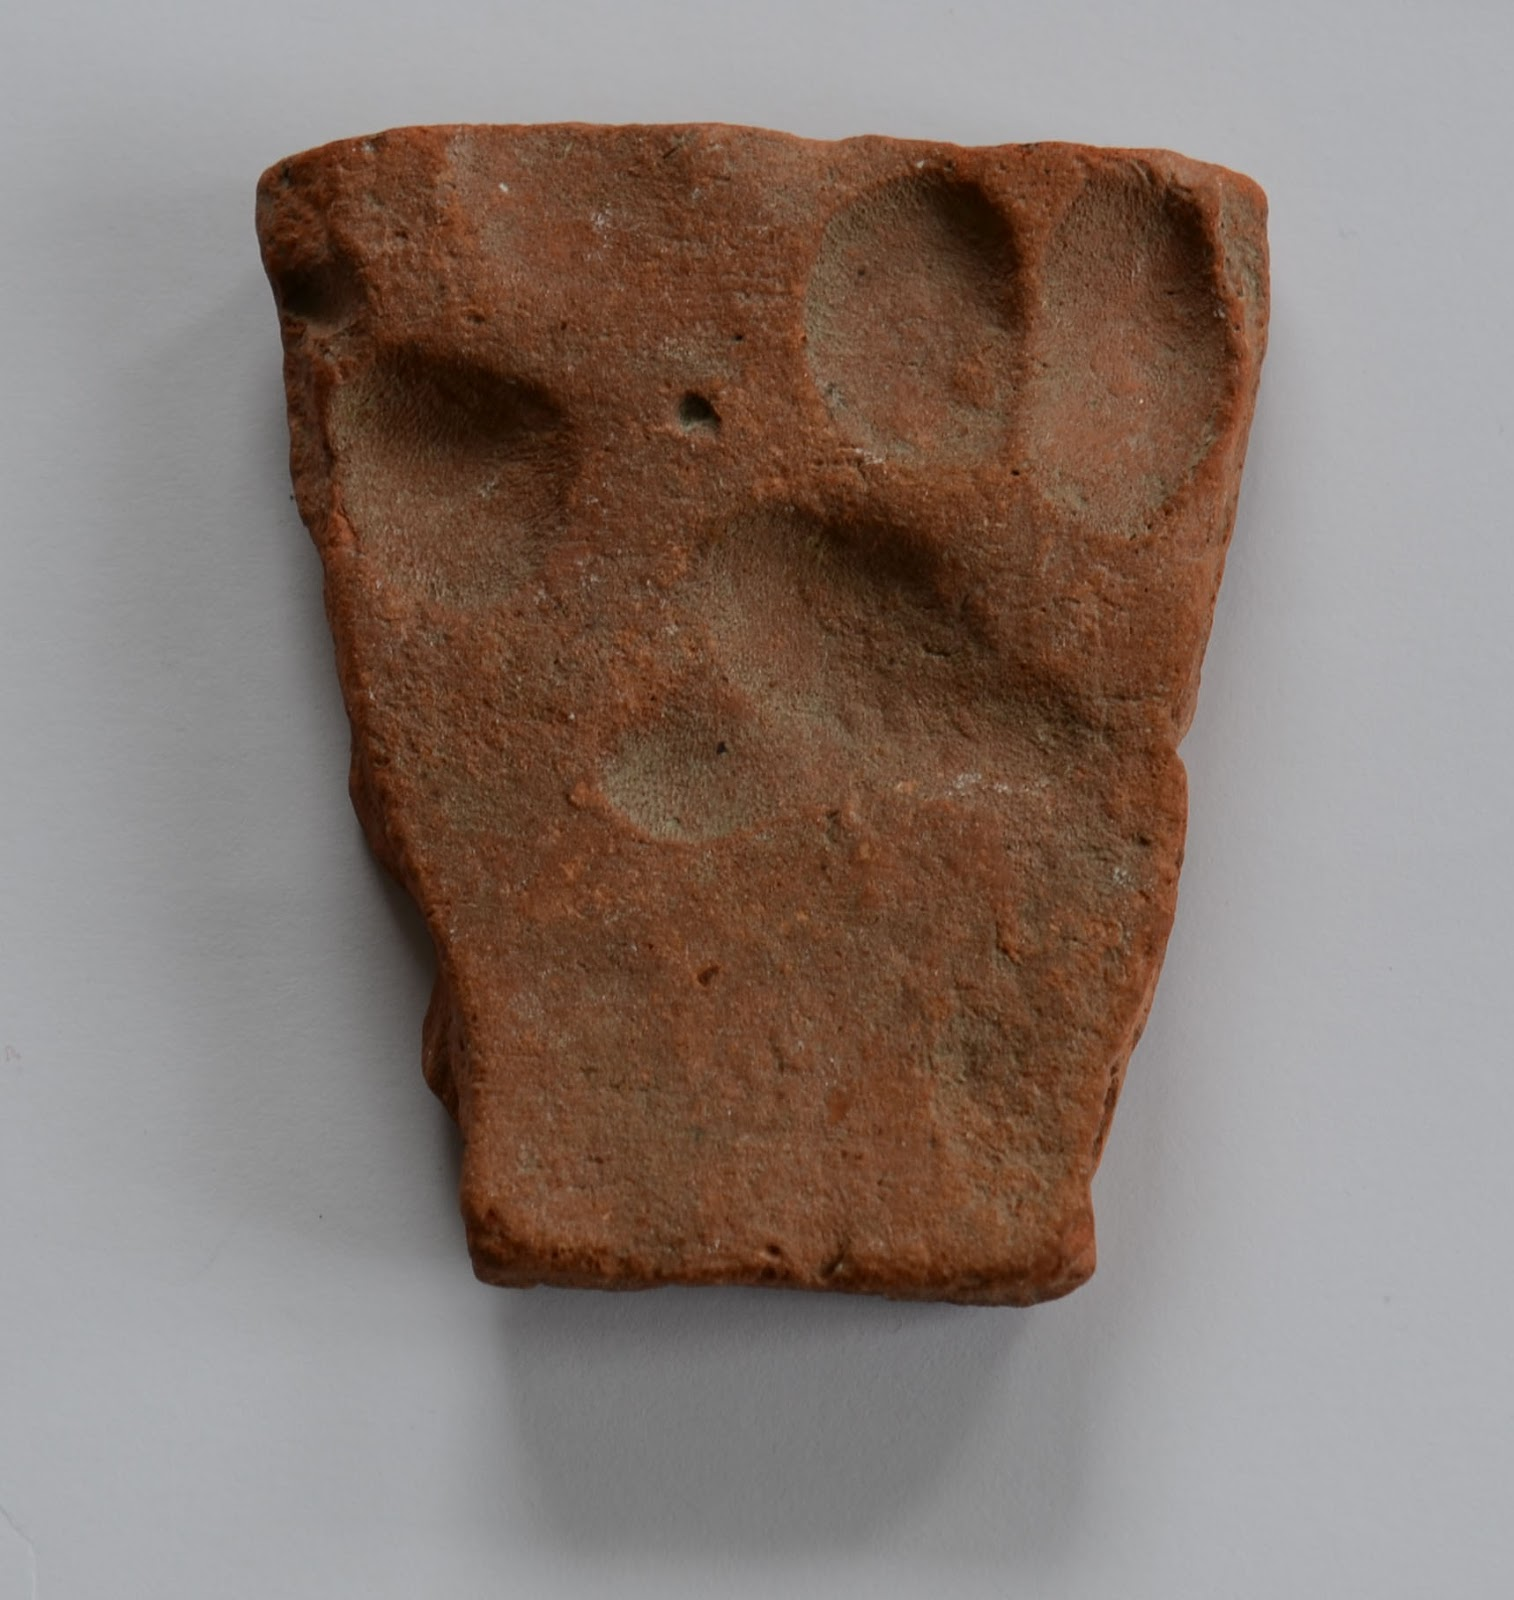 Mudlarking Dog Paw Print On Medieval Clay Roof Tile Found